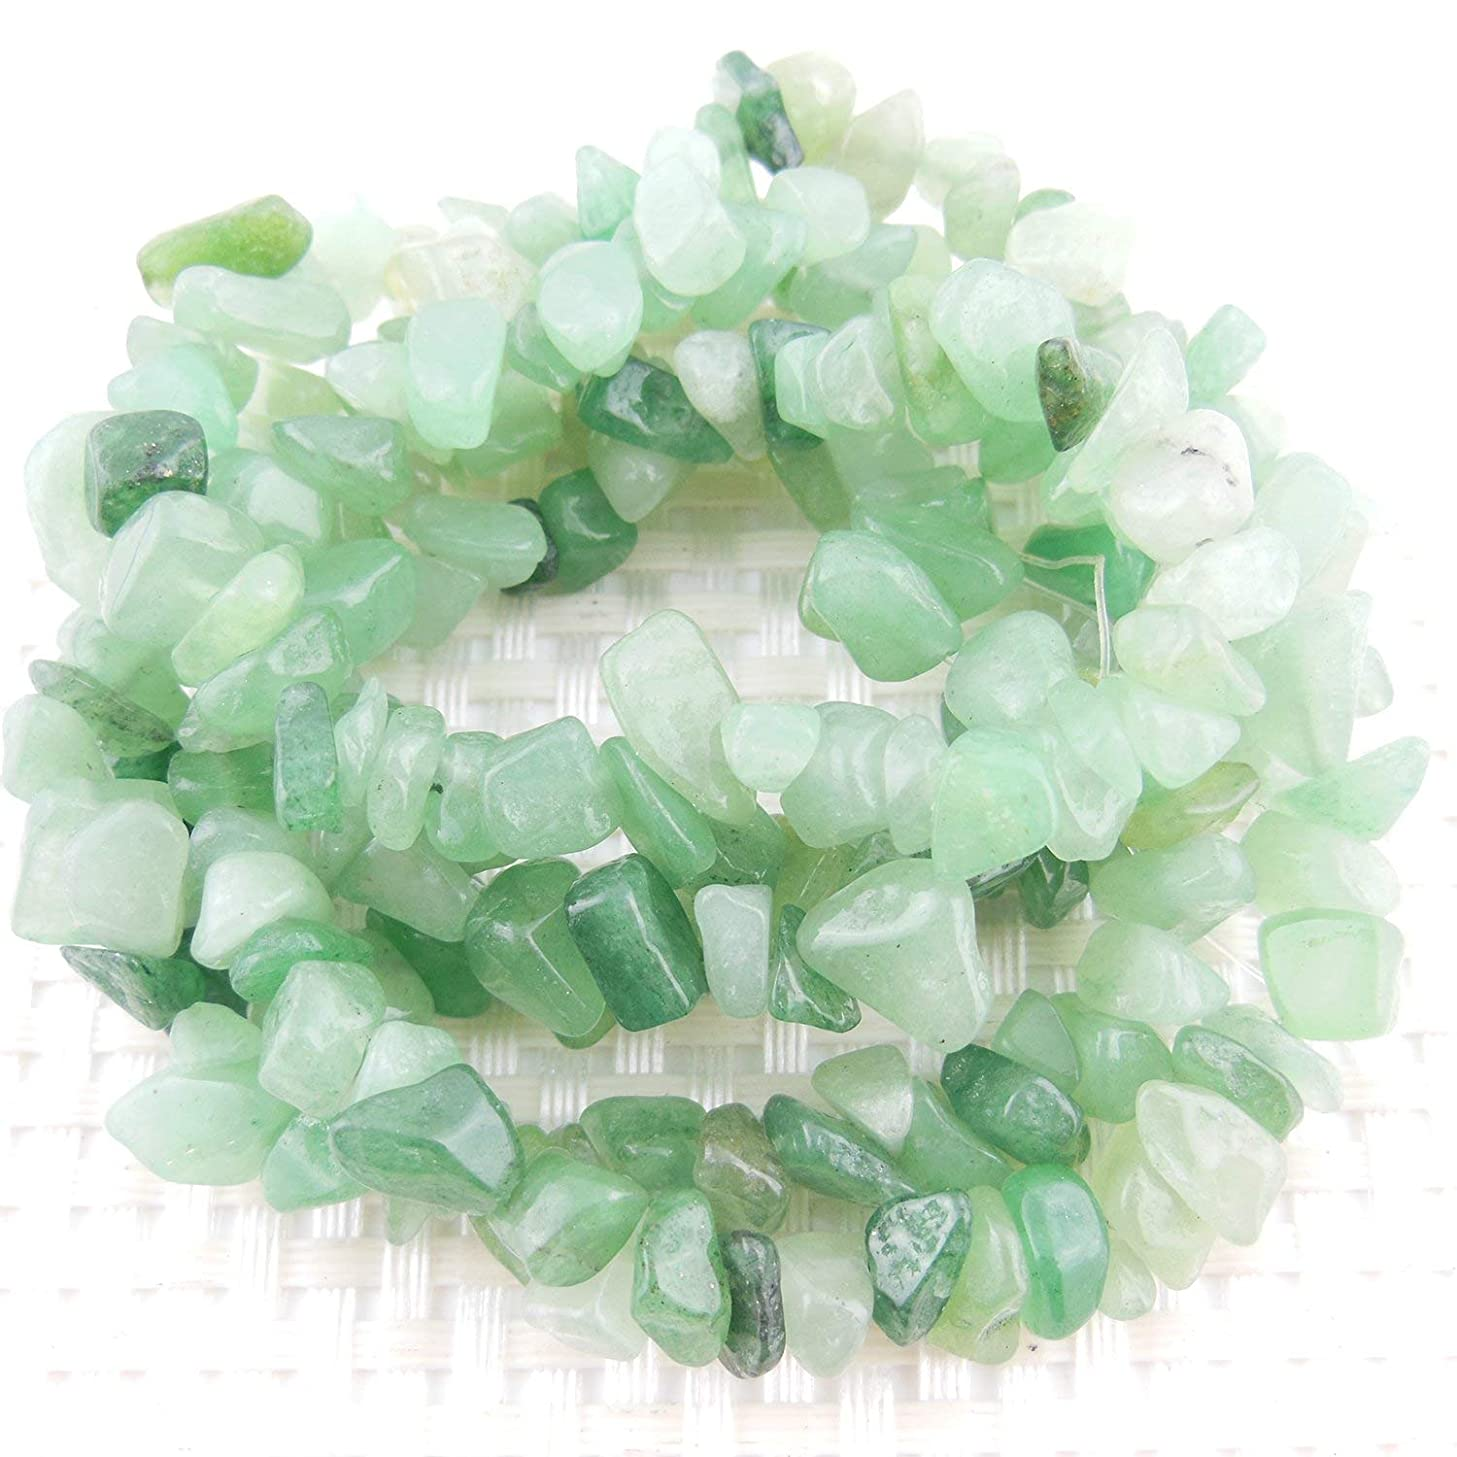 COIRIS 2 Strands 33'' 5-8MM Nice Green Adventurine Loose Chips Gemstone Beads for Jewelry Making DY Design (St-1017)